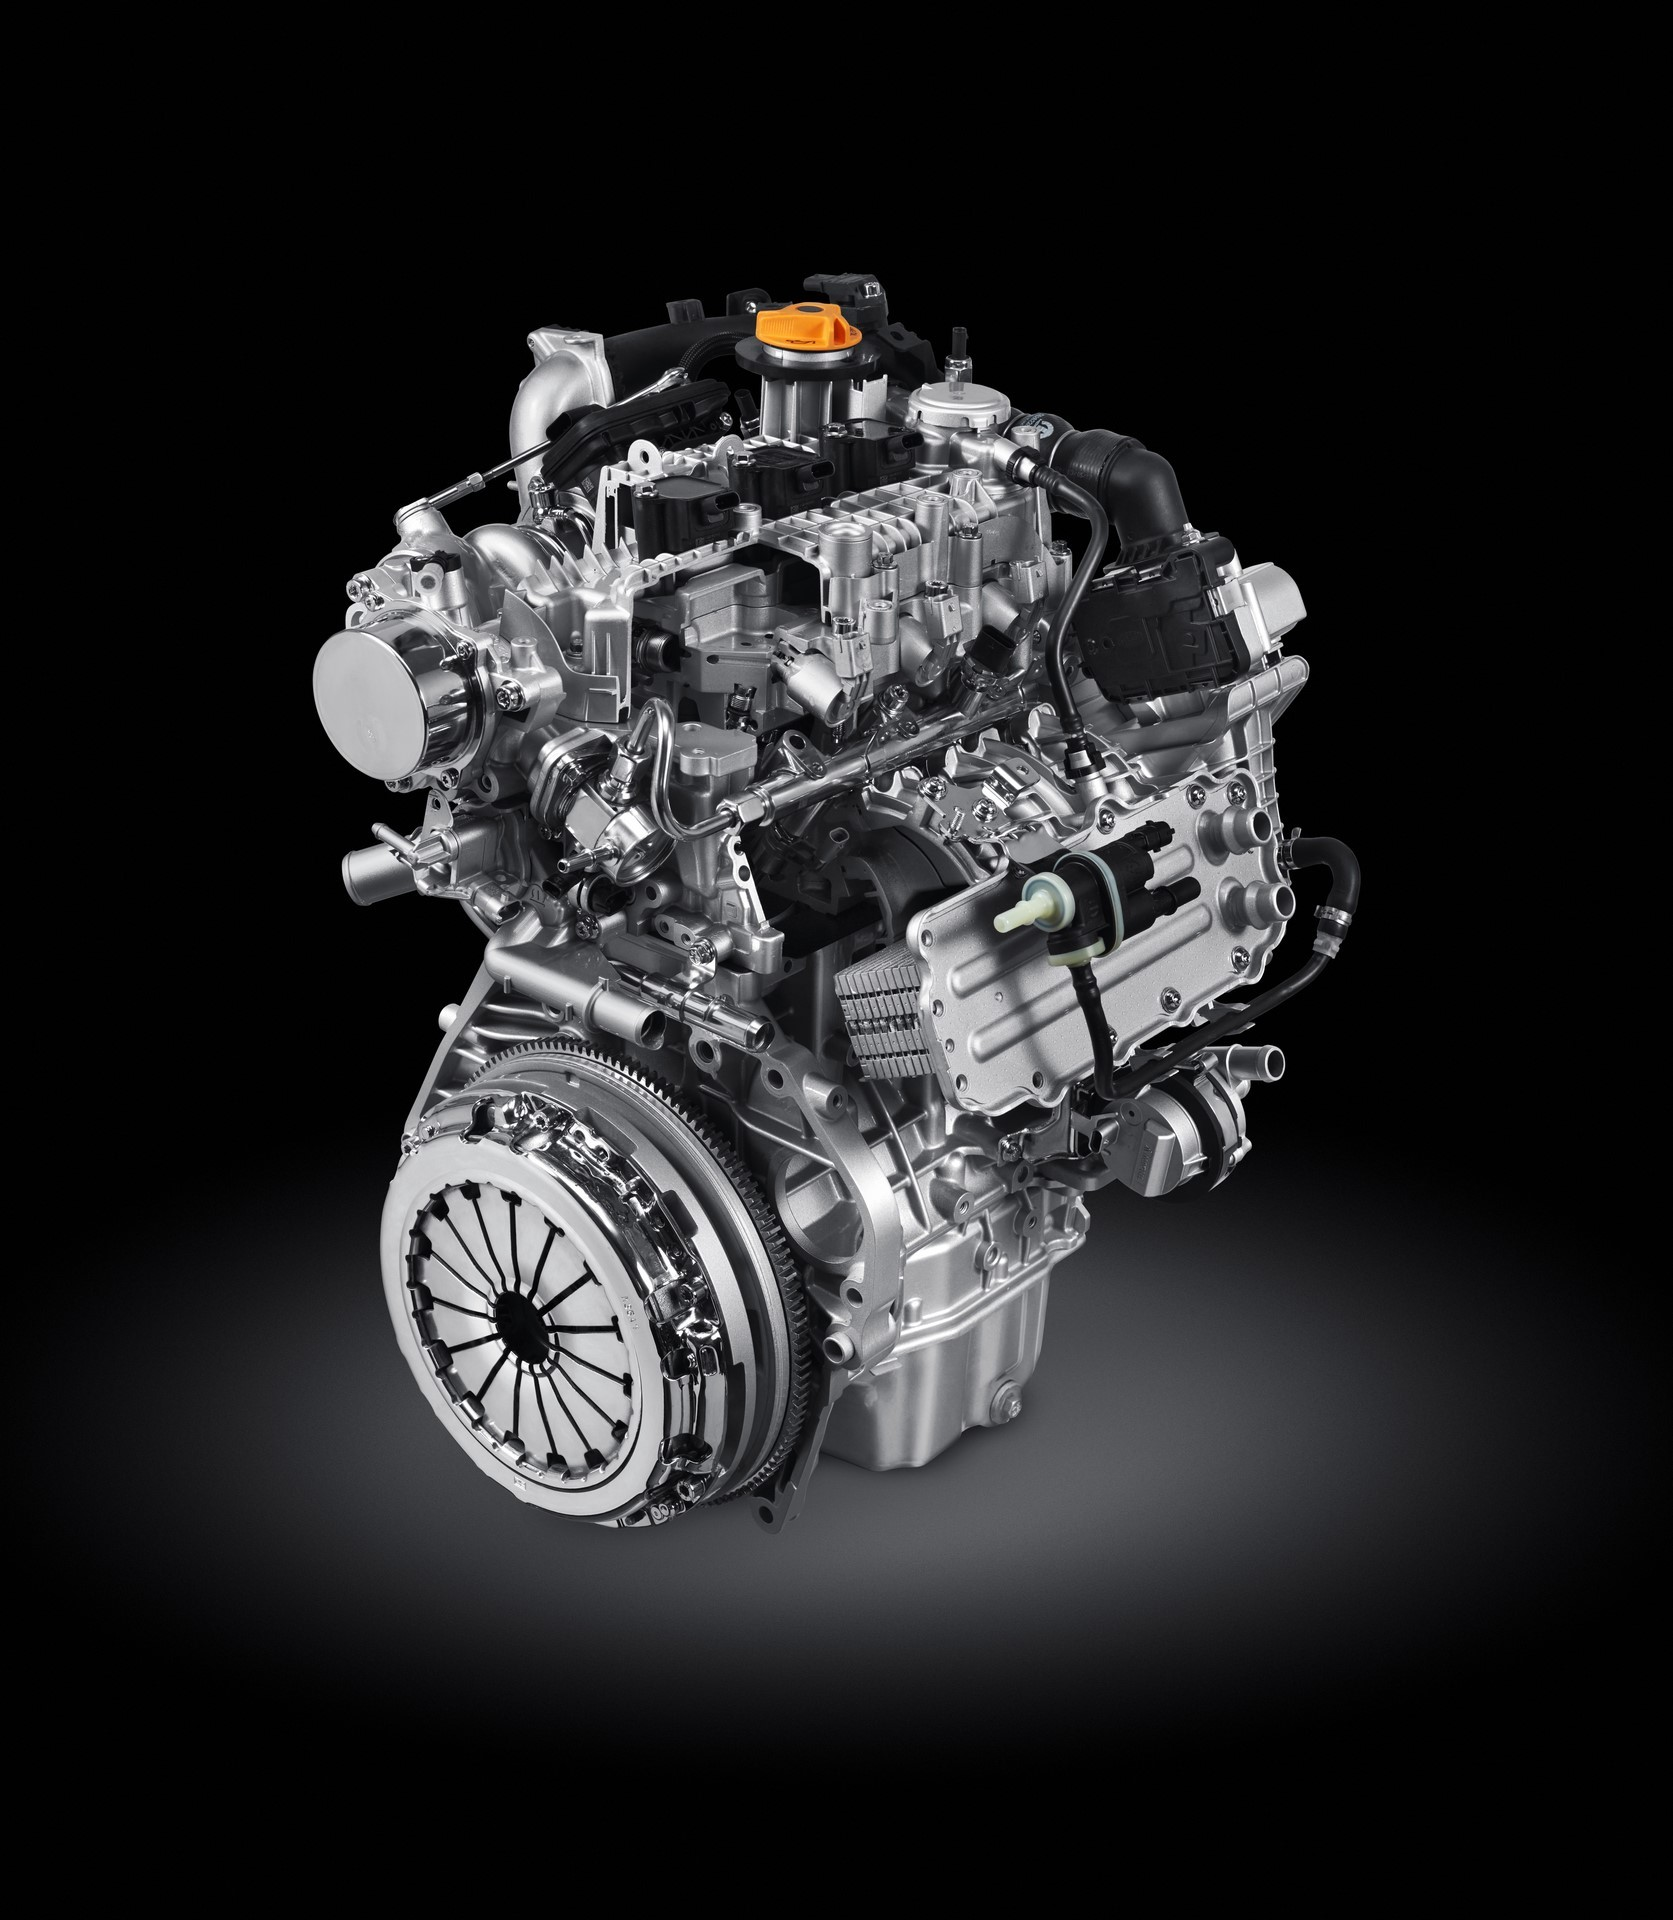 180828_Fiat_New-10L-Turbo-3-cylinder-120HP_16